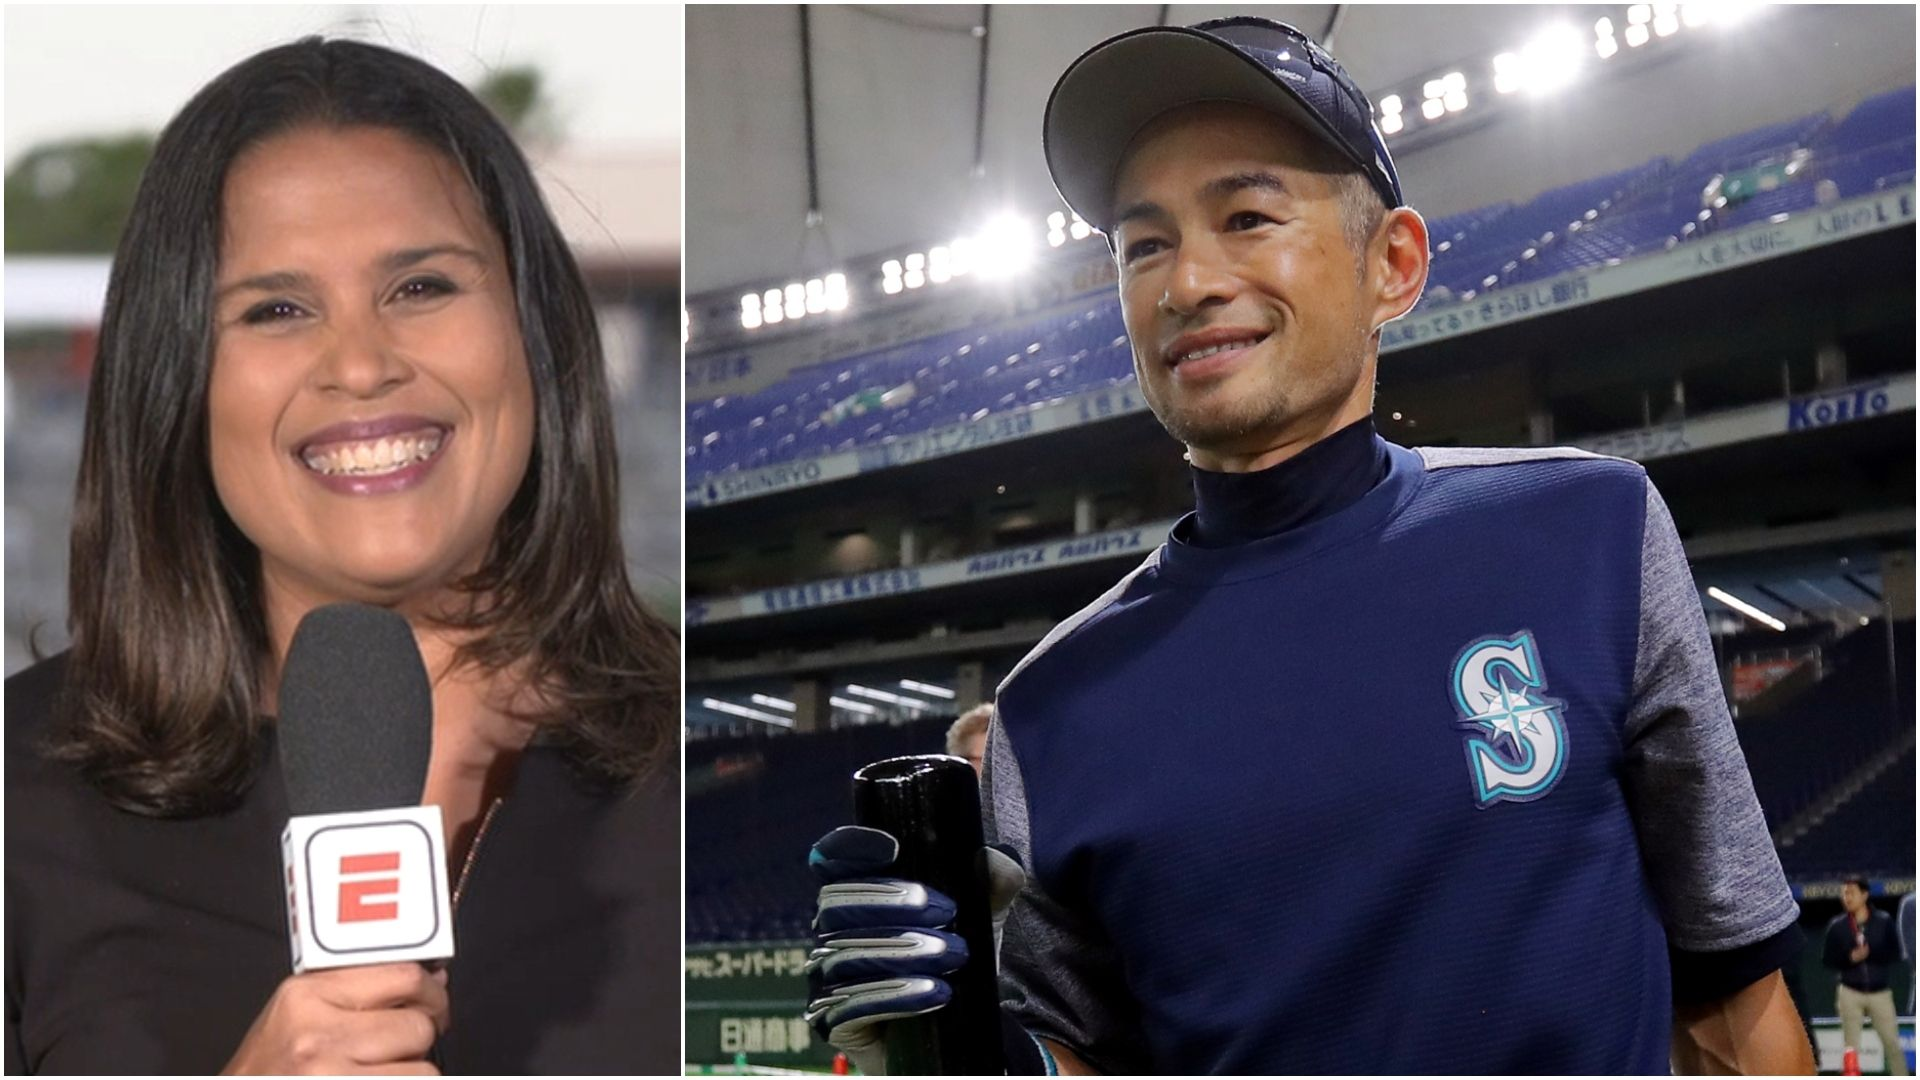 Ichiro is a god and idol in Japanese baseball